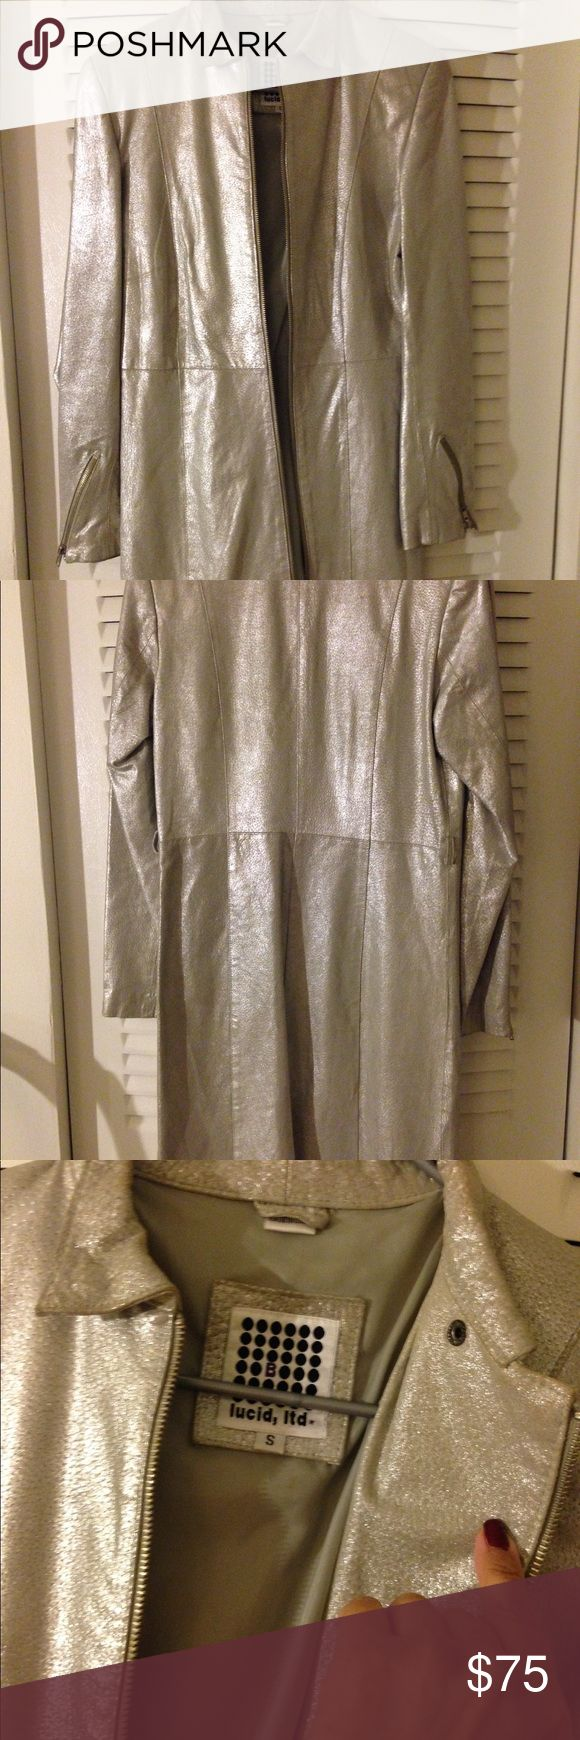 """Lucid  Metallic Silver Genuine Leather Coat Small Women's Lucid metallic silver soft 100% genuine leather trench -style  jacket coat. Size small or 4 - 6. Slight angle zippered front and sleeves. Great condition besides the missing thin 0.25"""" belt which I didn't use anyway. Must have tossed when replacing garment bags. Jackets & Coats Trench Coats"""